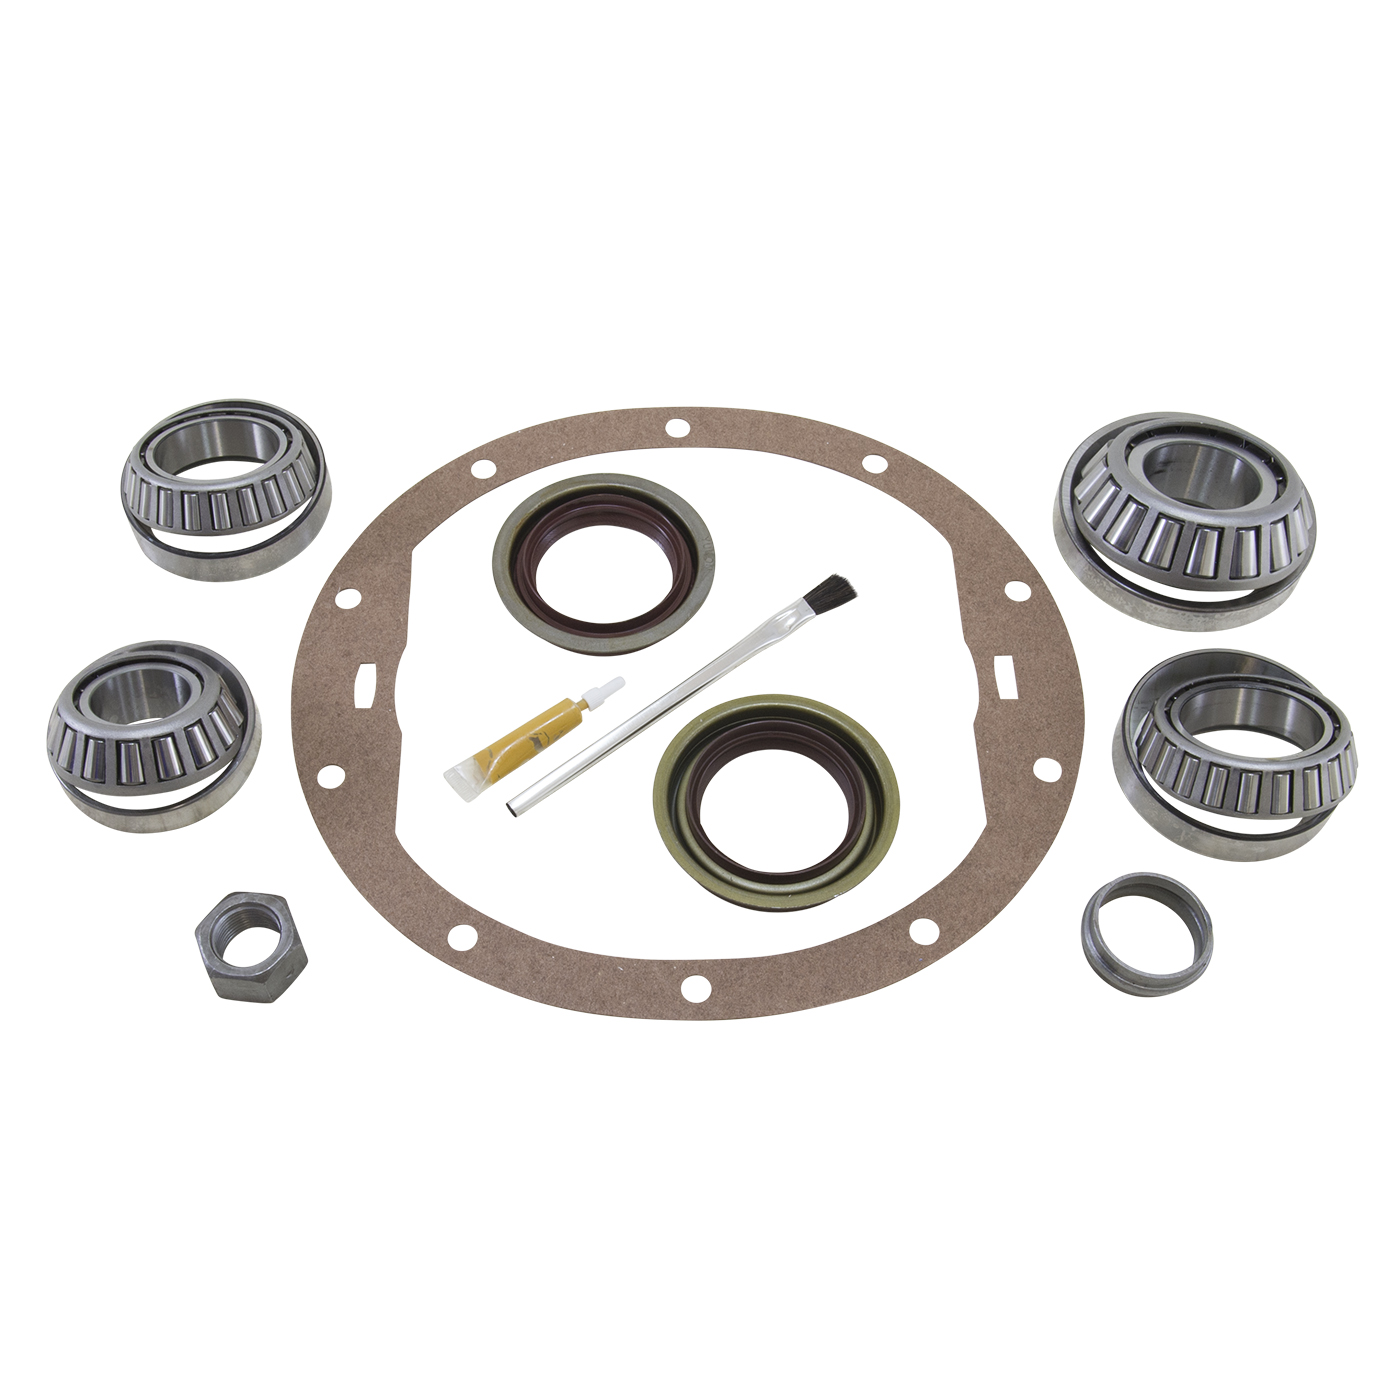 BK GMVET-CI - Yukon Bearing install kit for '63-'79 GM CI Corvette differential